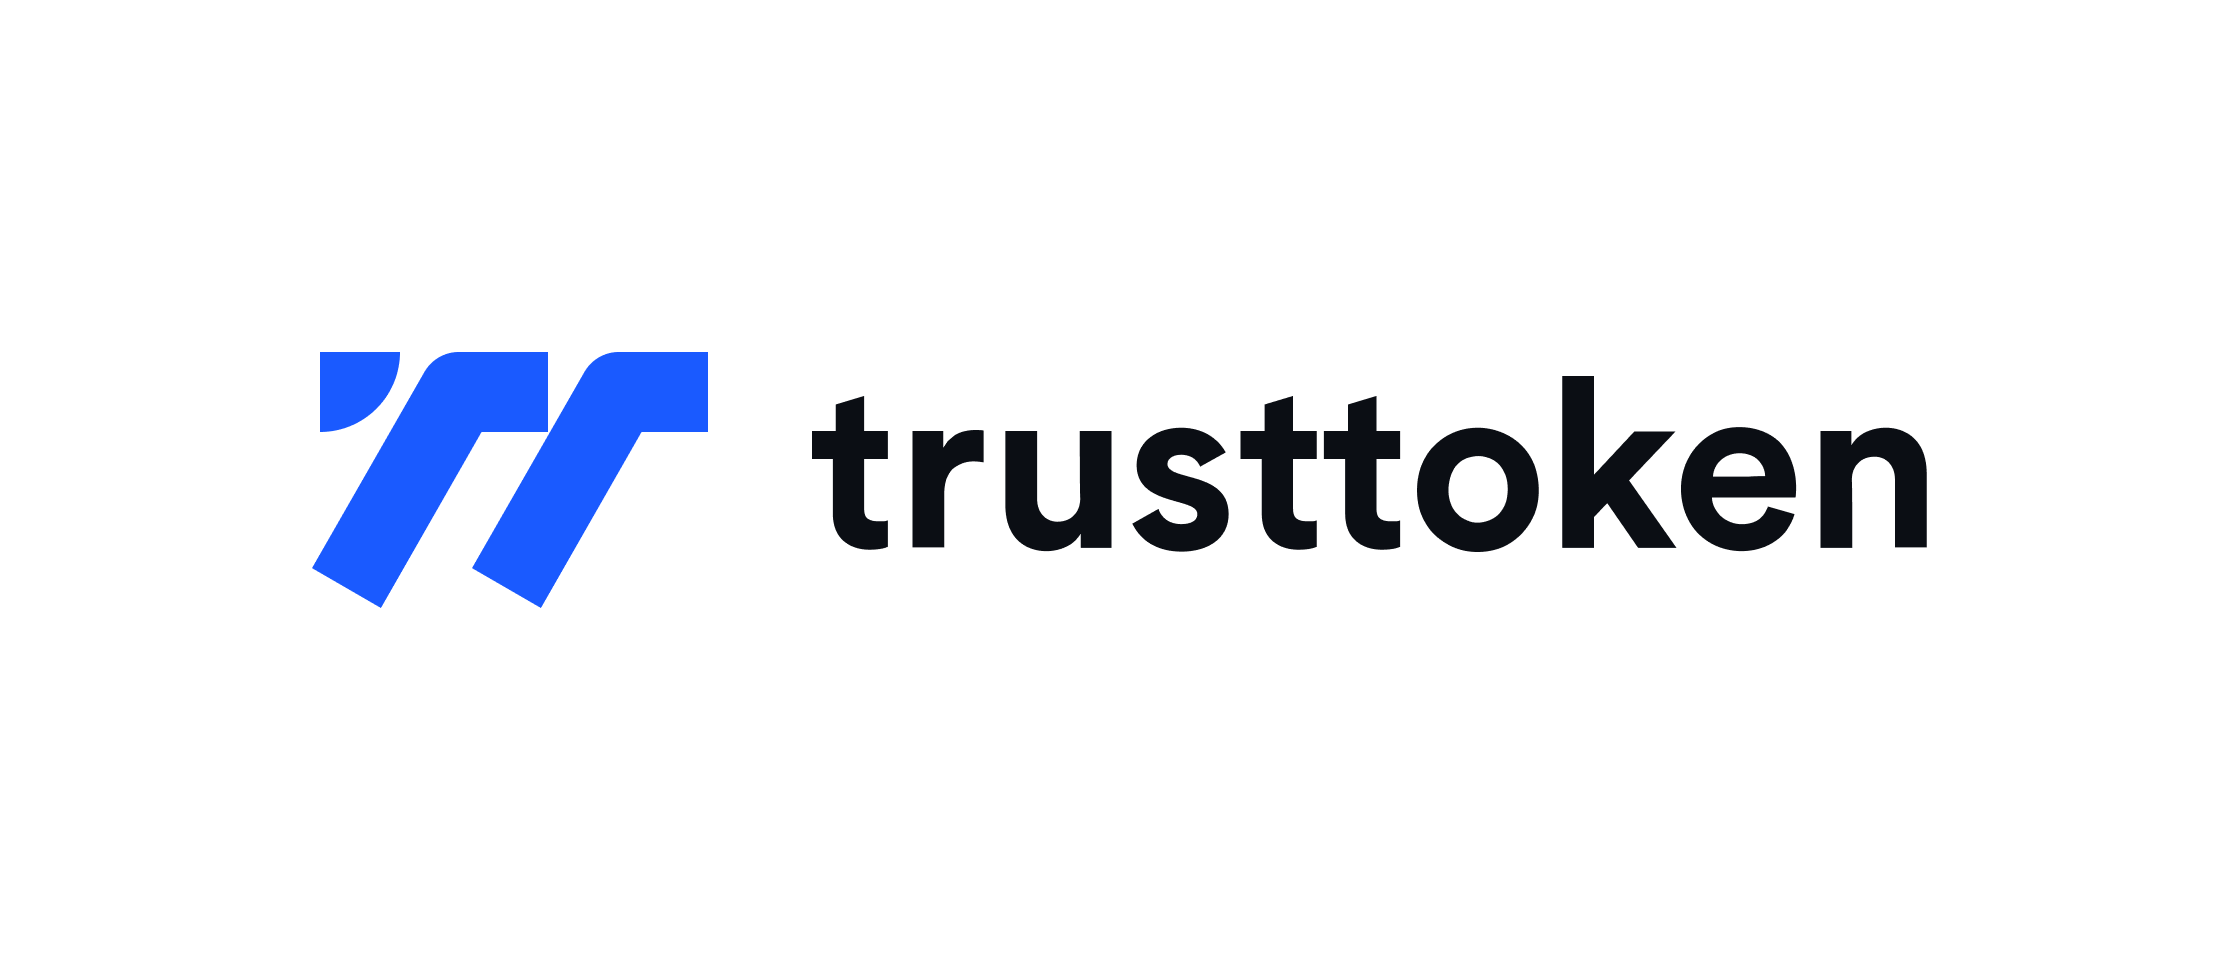 TrustToken partners with Secret Network, paving the way for private stablecoins • CryptoMode